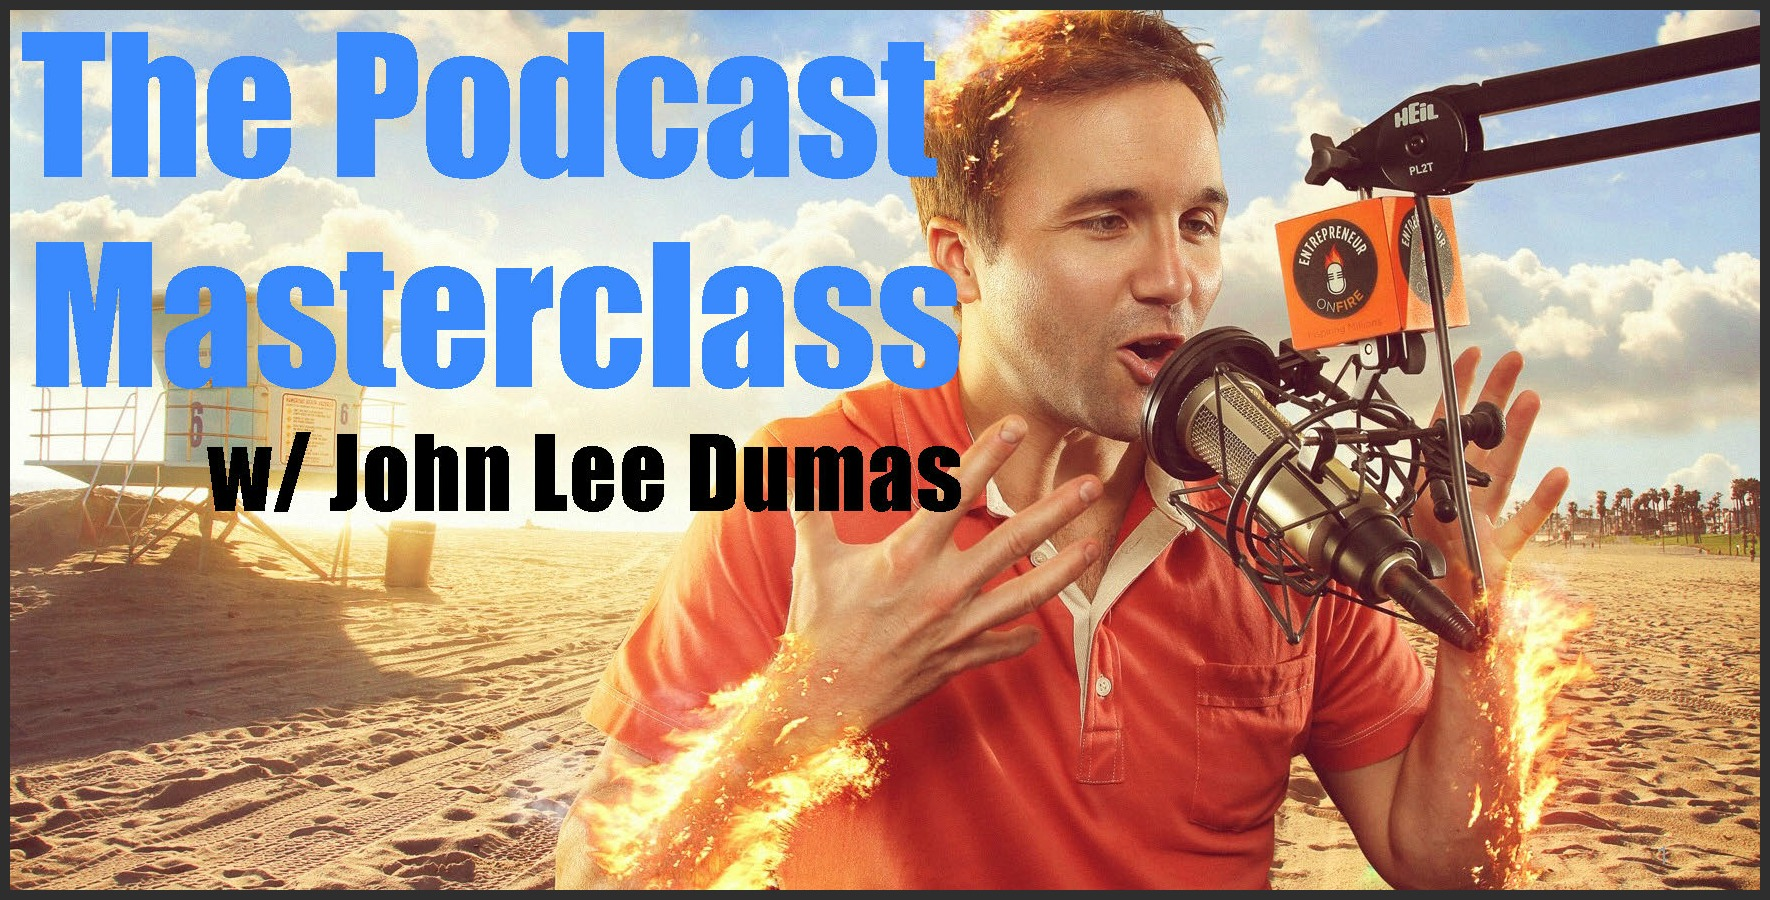 Watch The Podcast Masterclass now!